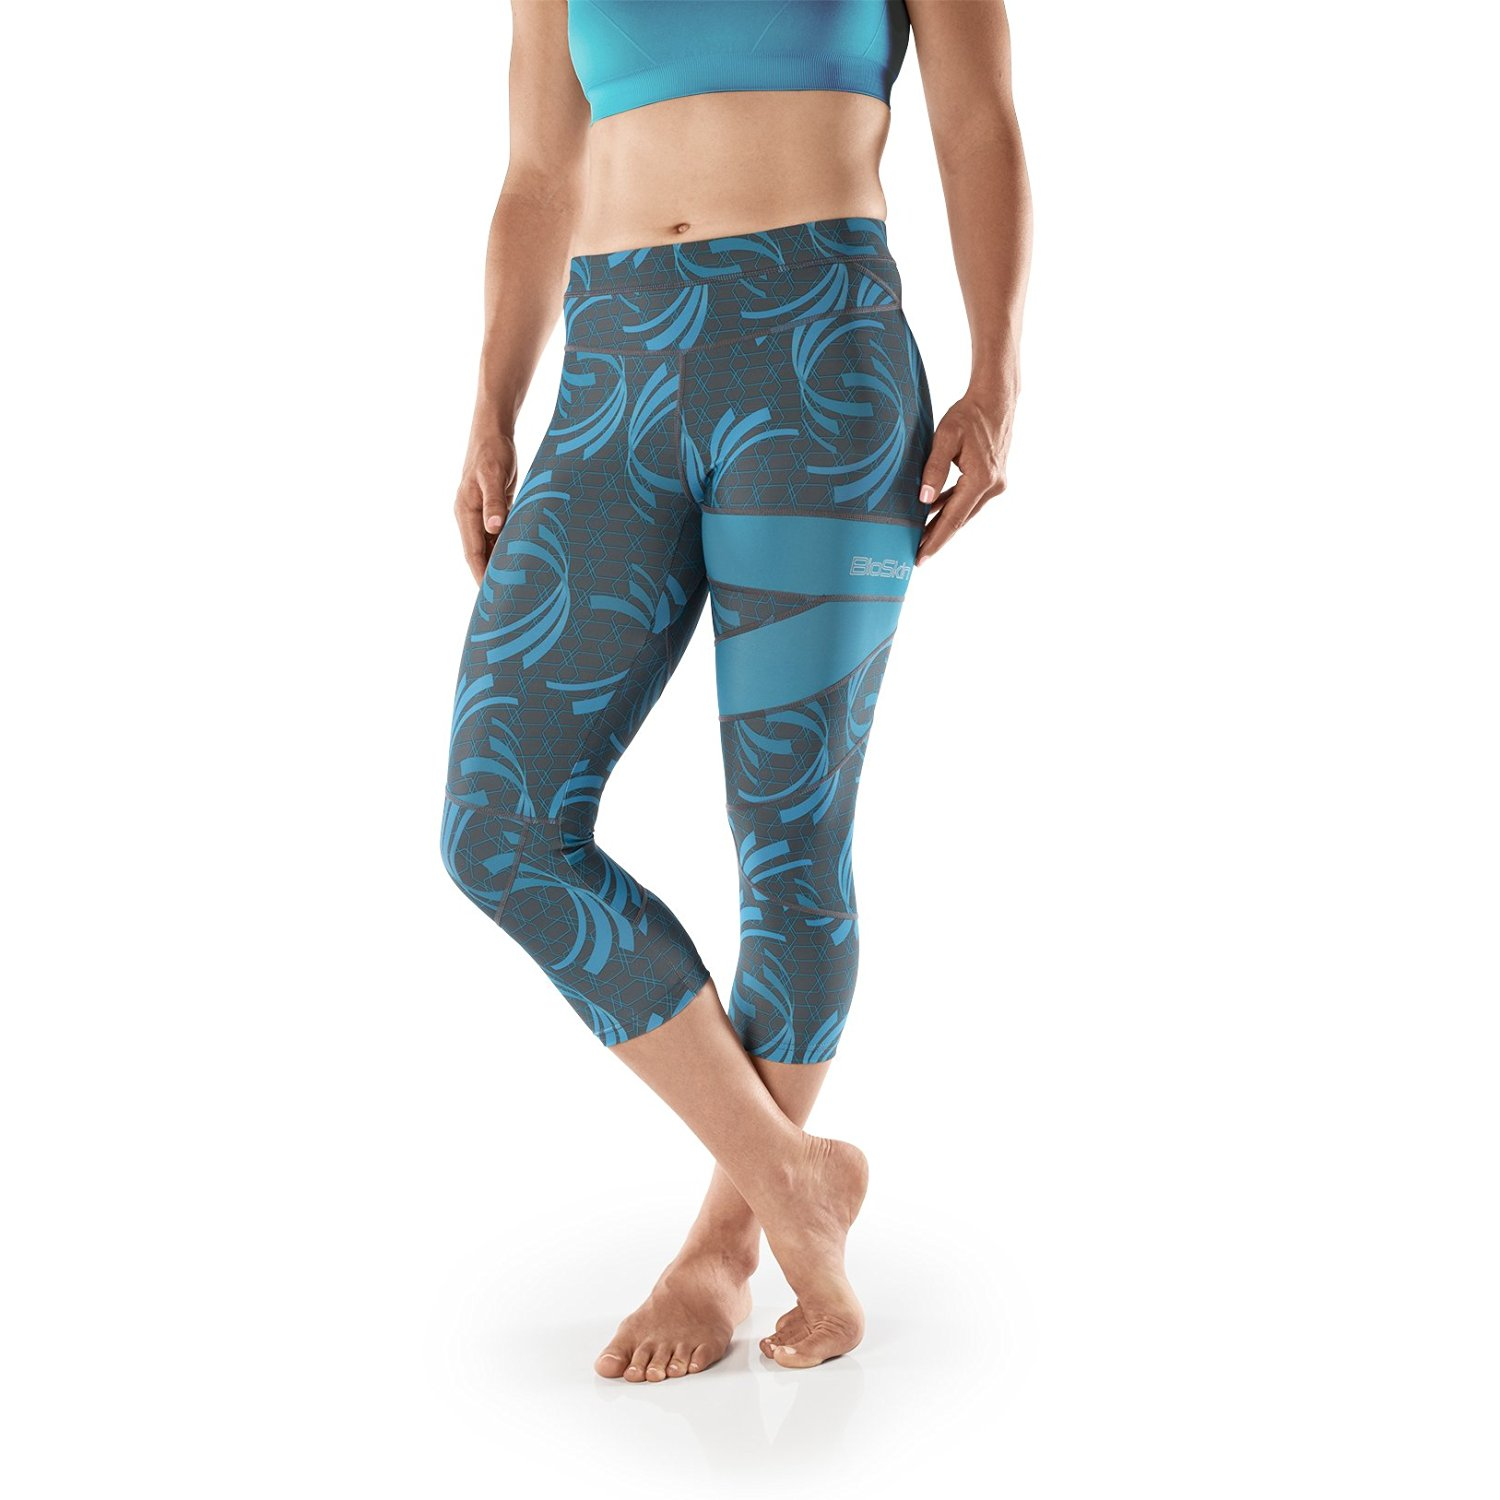 b677213c5027d Get Quotations · BioSkin Perfect Fit Running Compression Capris, 3/4  Leggings With Phone Pocket- Blue